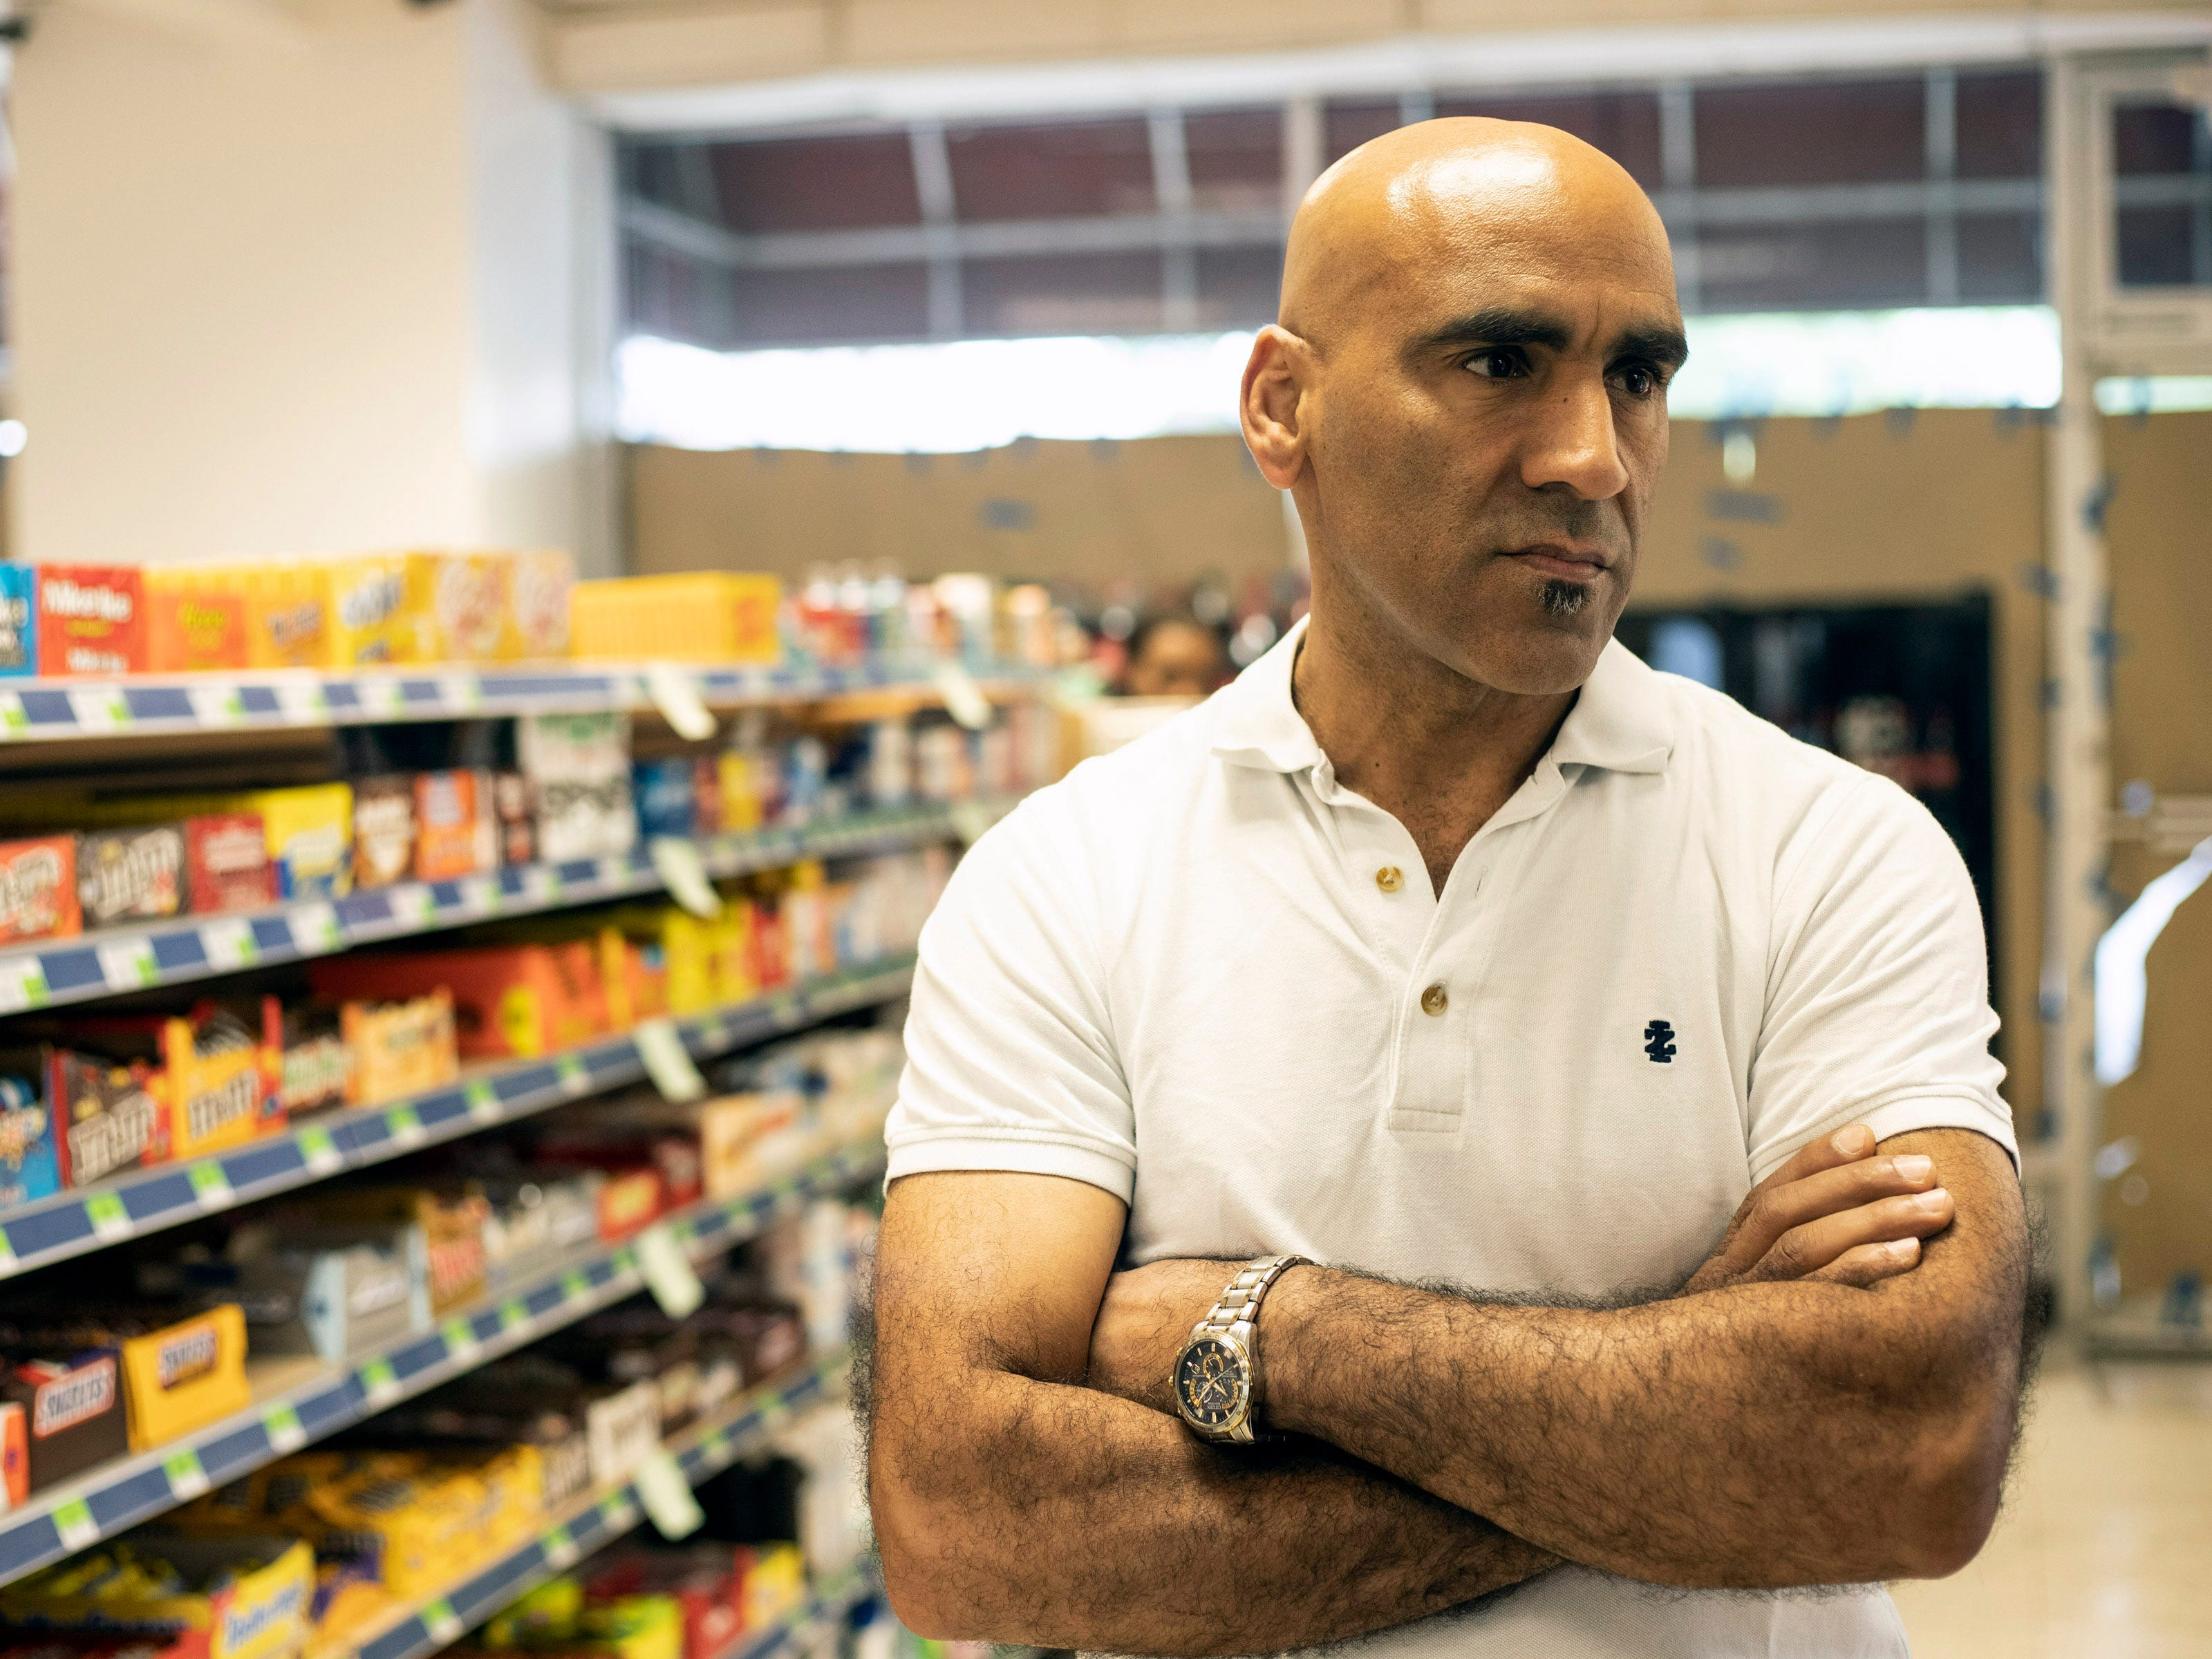 Owner Abdul Alshawi is ready to open the Superior Market & Deli at Third & Broadway after lengthy renovations to the 5,400-square-foot space in the century old Fincastle Building. 5/10/19